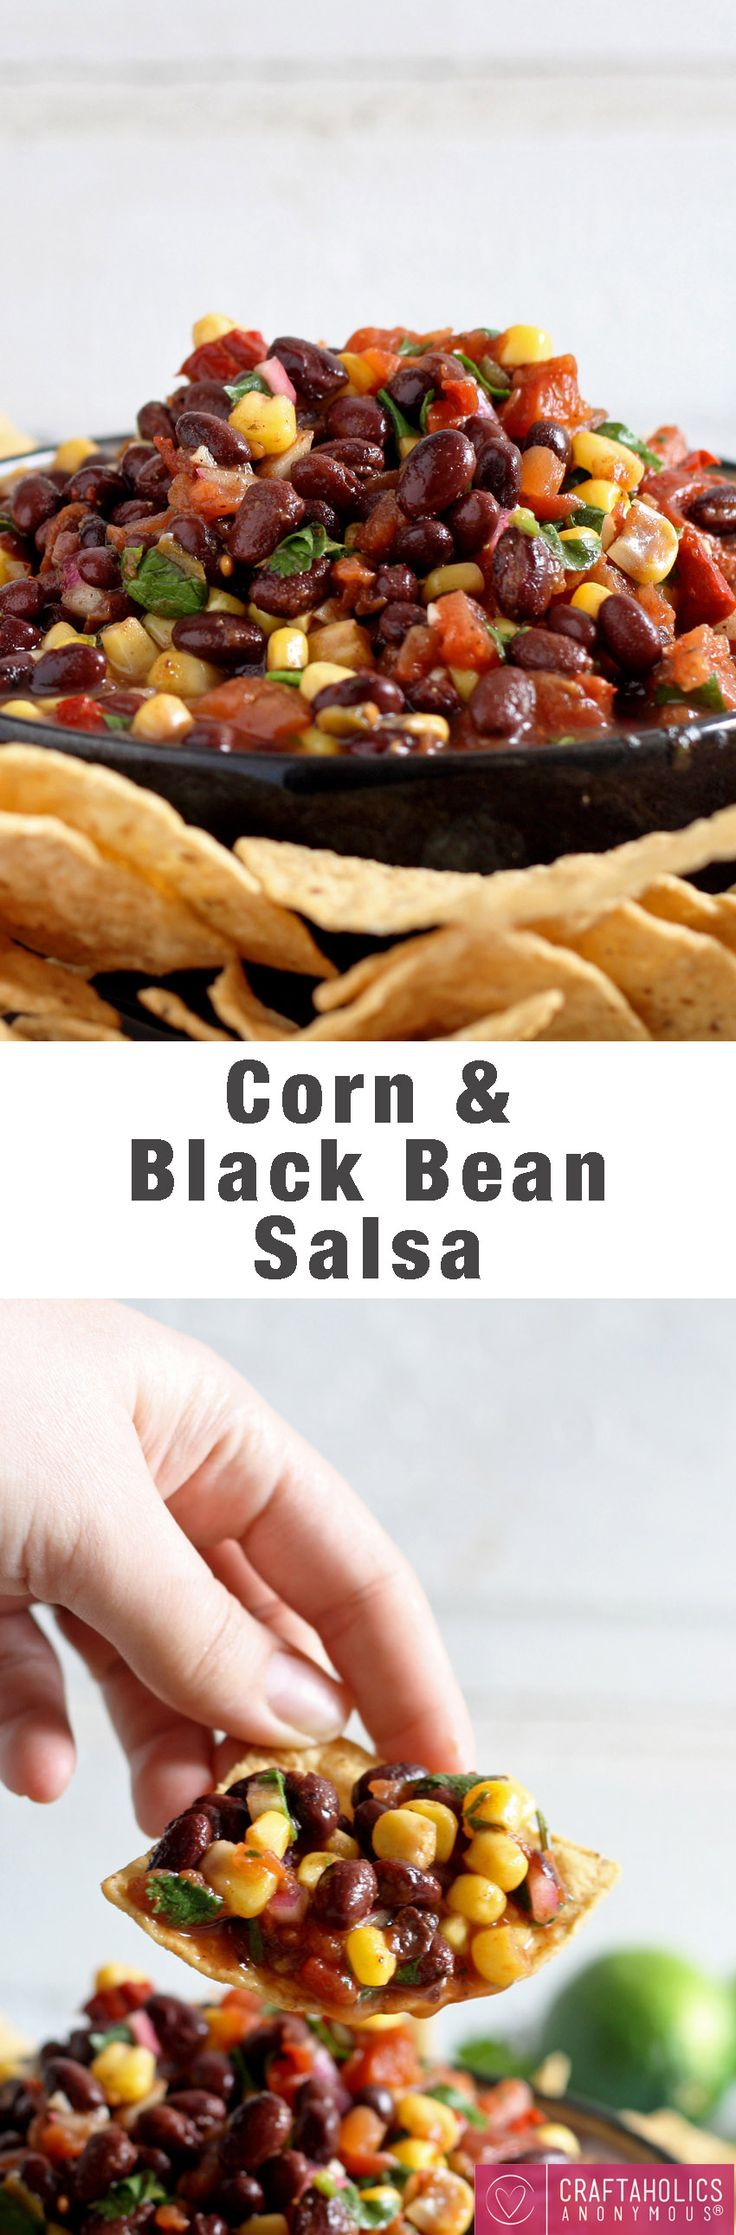 Yum! This Corn and Black Bean Salsa looks delicious! Simple recipe for parties! | Craftaholics Anonymous®